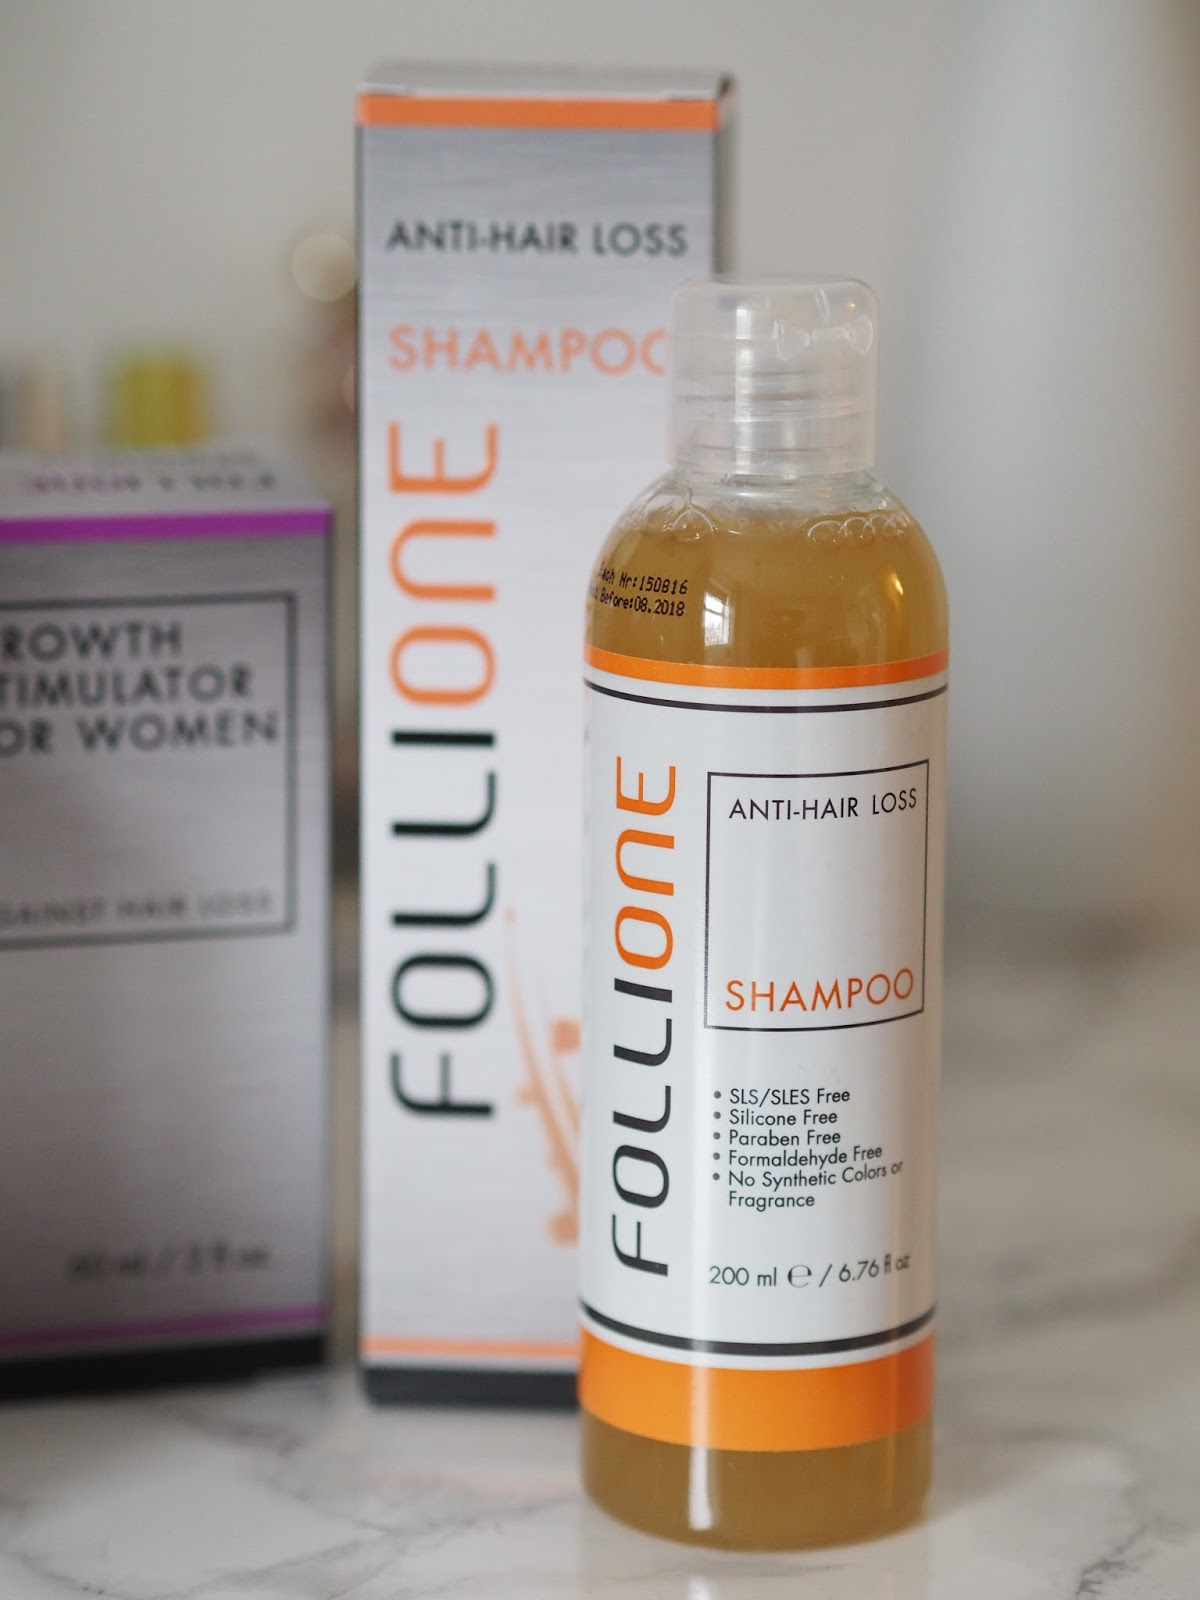 Follione review anti-hair loss shampoo Priceless Life of Mine over 40 lifestyle blog